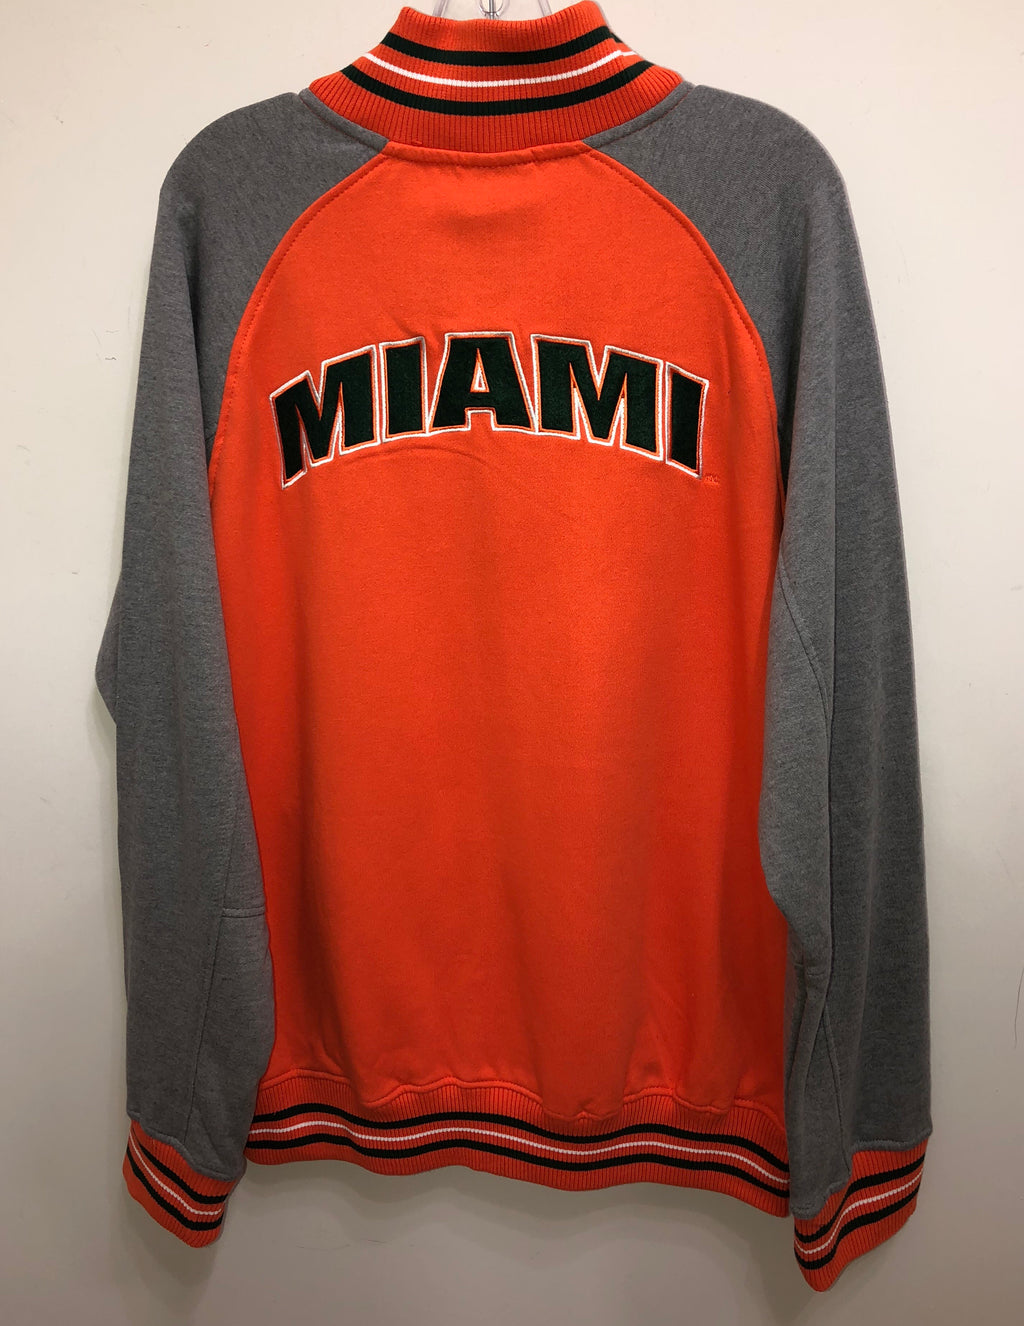 Miami Hurricanes Men's Alpine Varsity Full Zip Jacket - Orange/Heather Grey